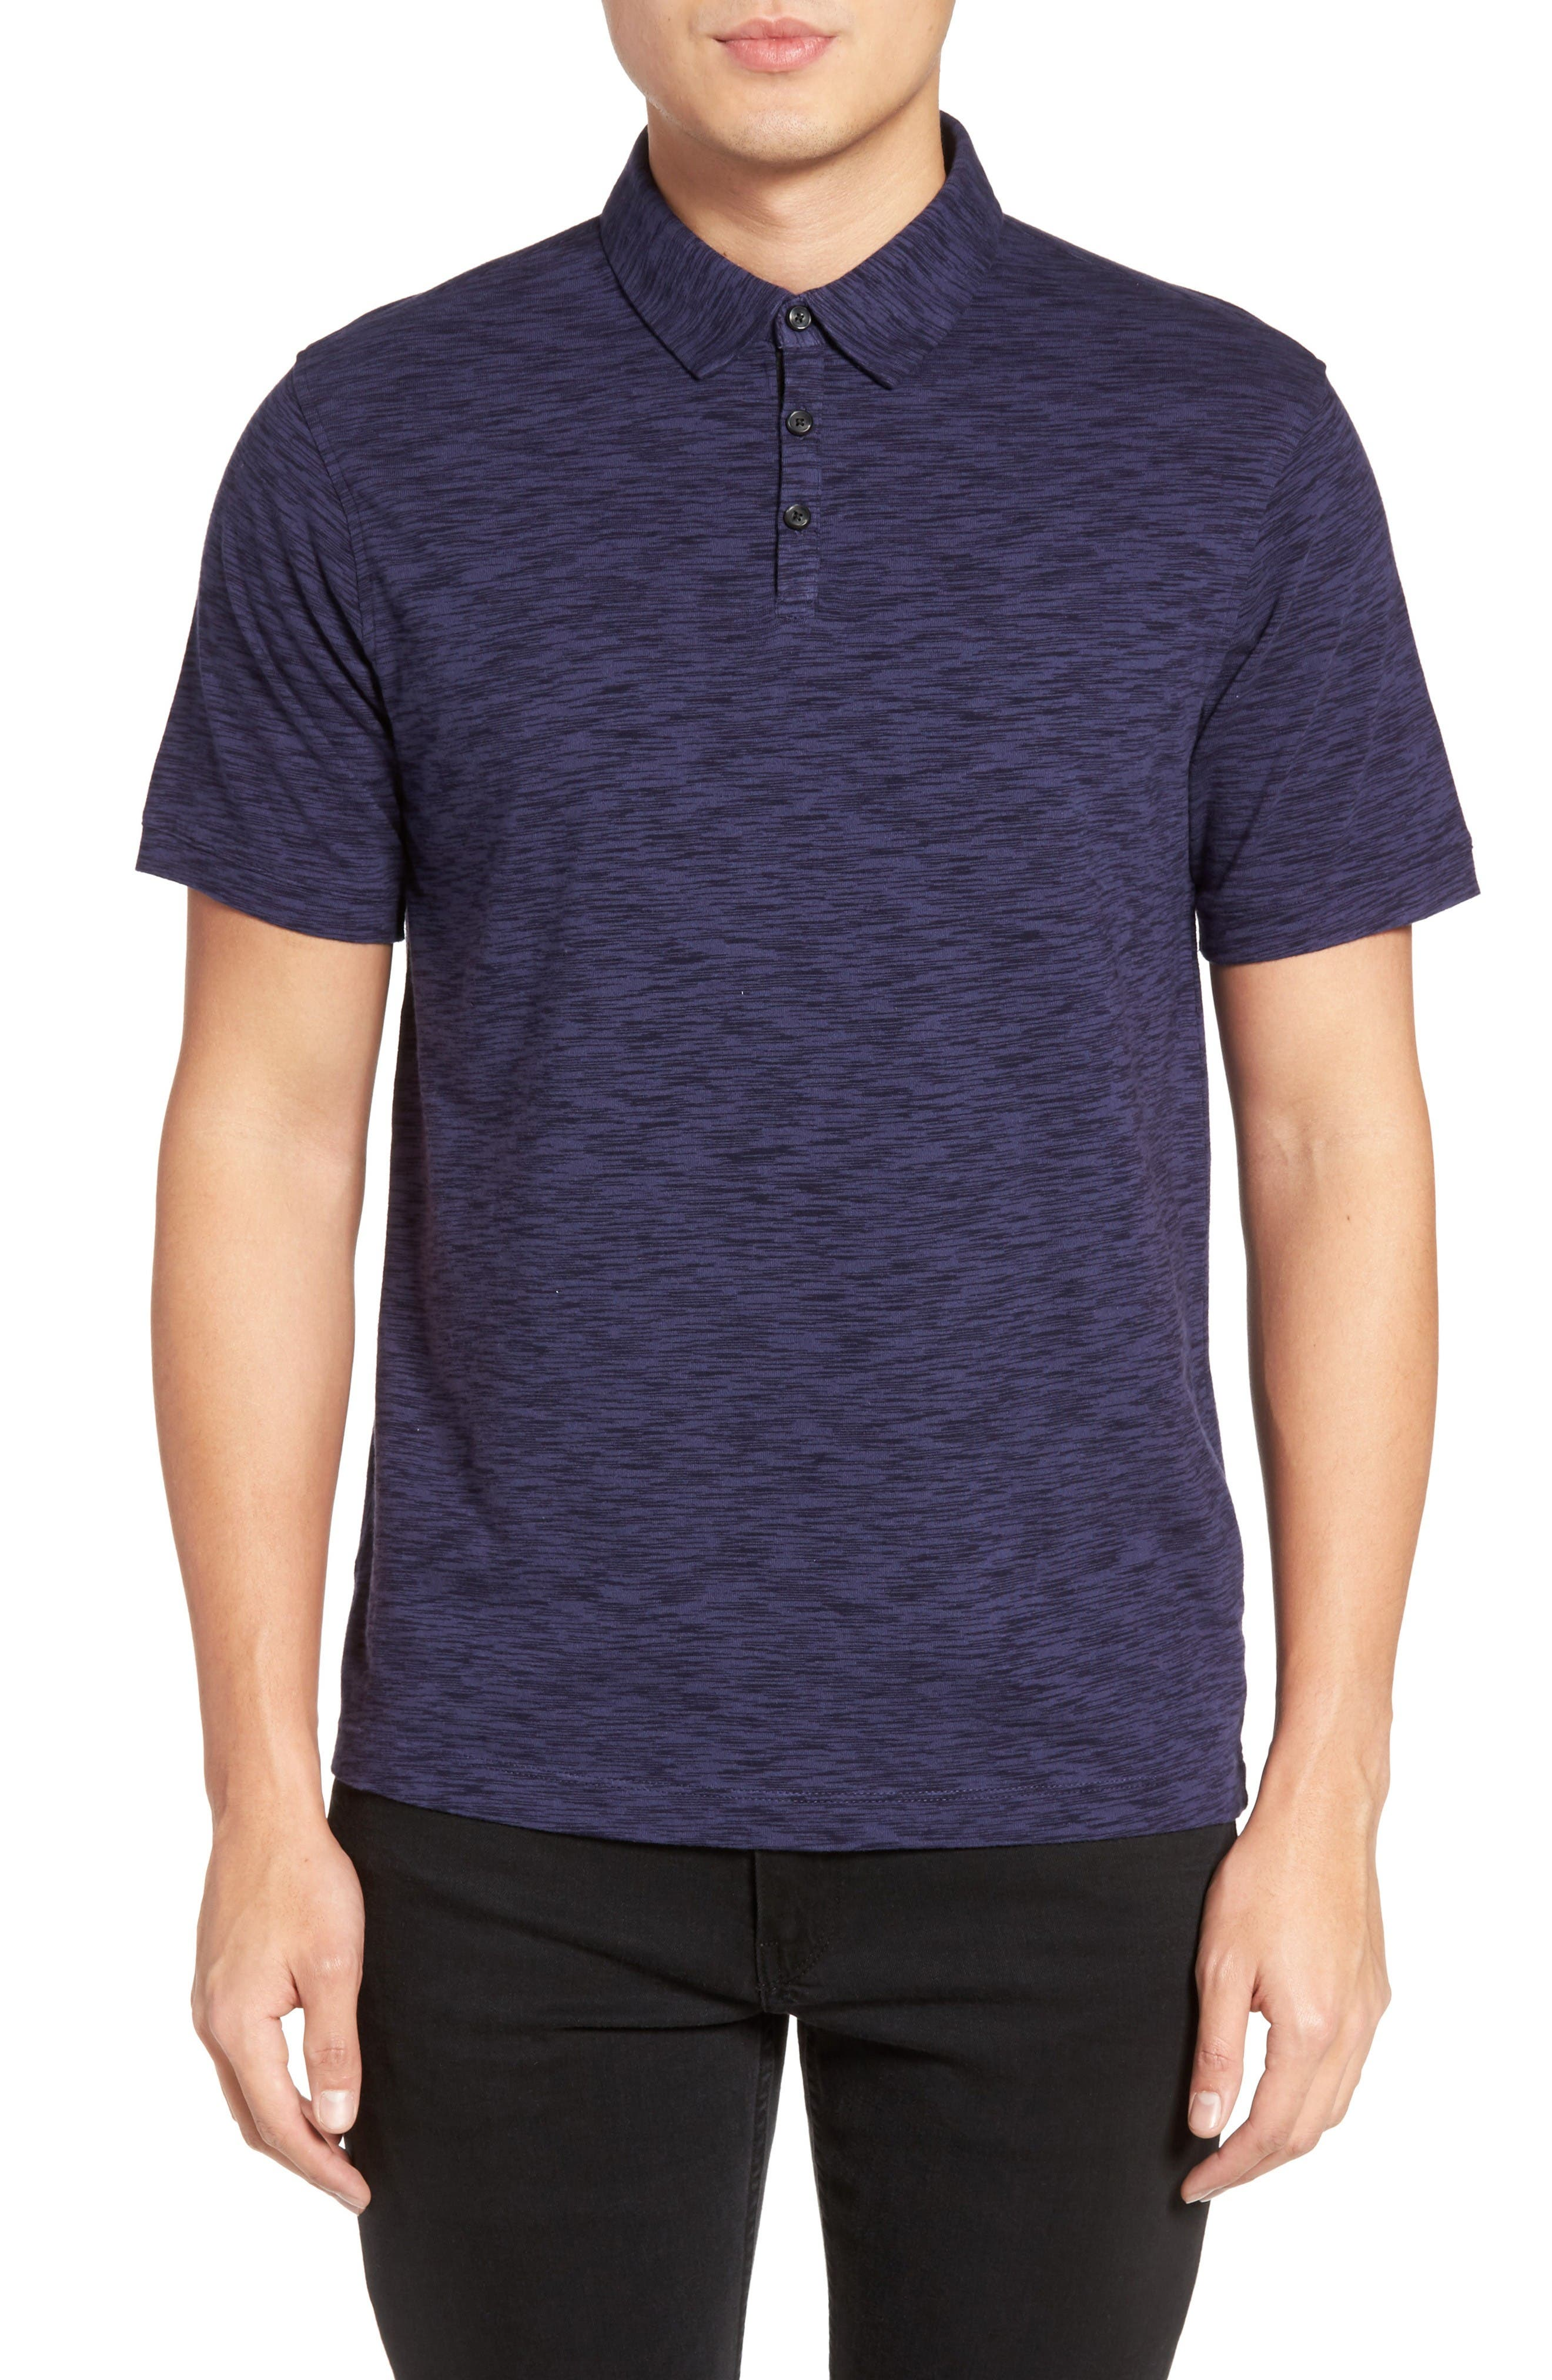 Main Image - Calibrate Trim Fit Space Dye Polo